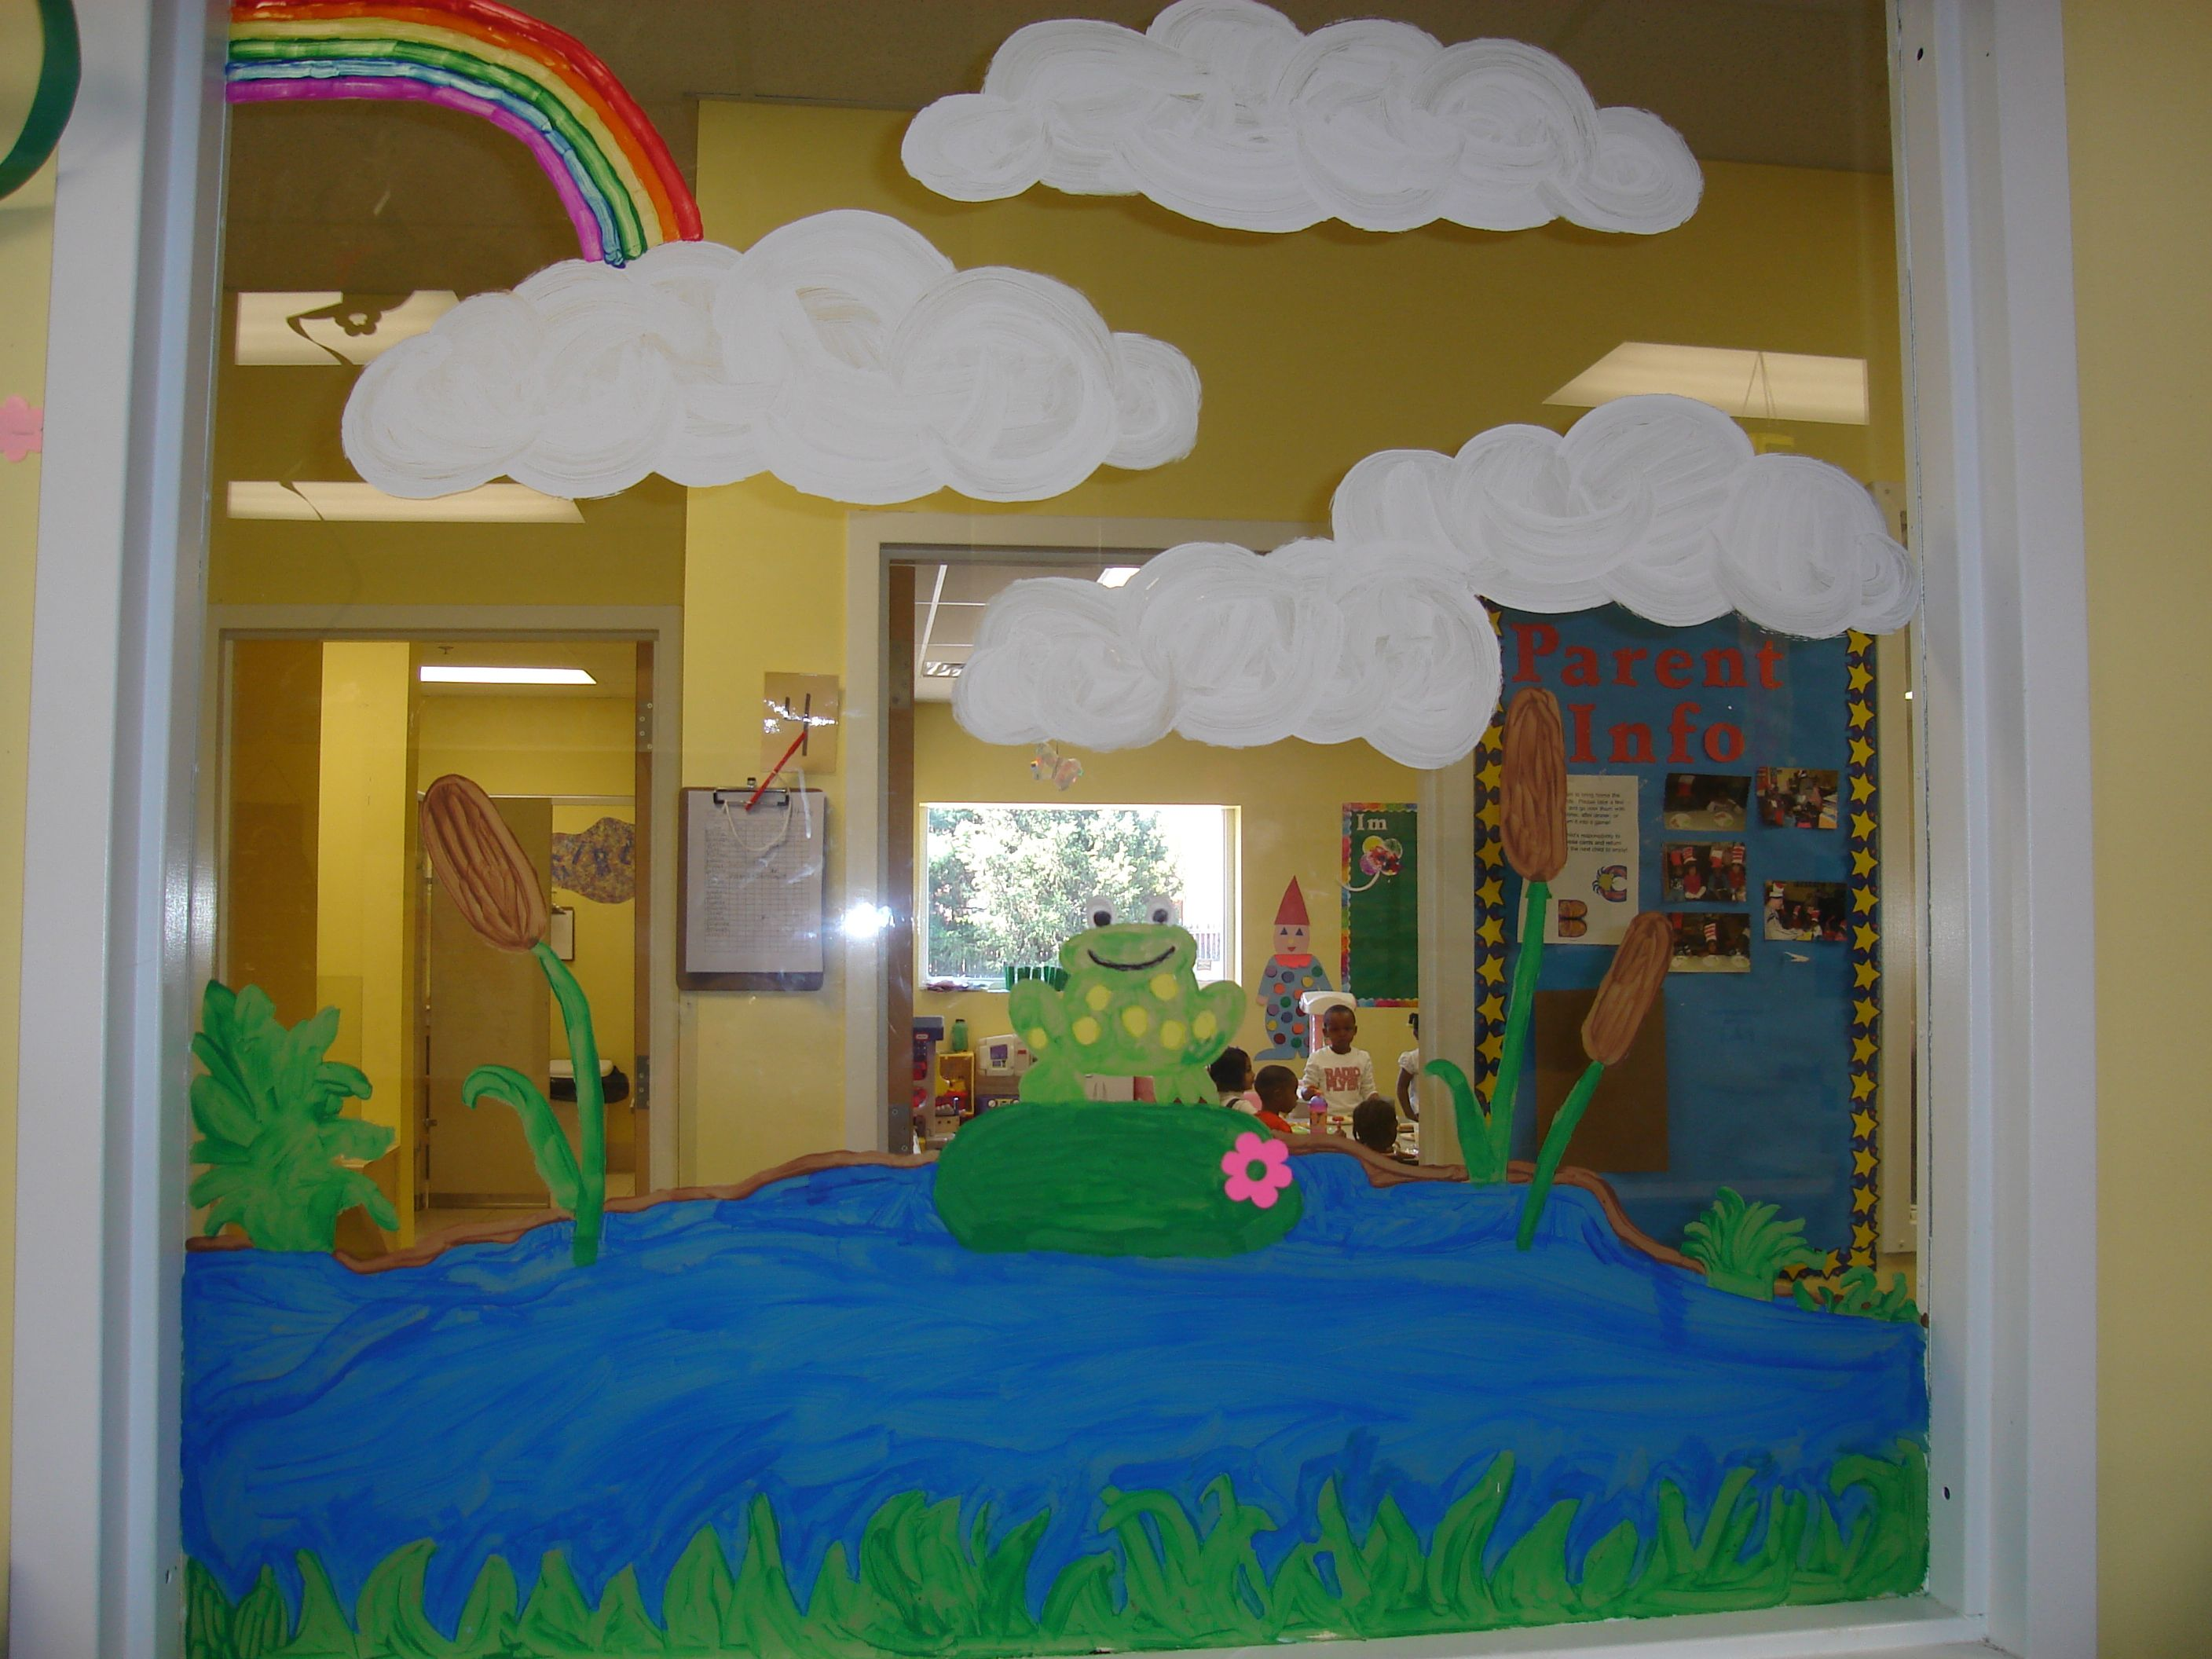 Classroom Decoration Window : Frog classroom decorations painted a on